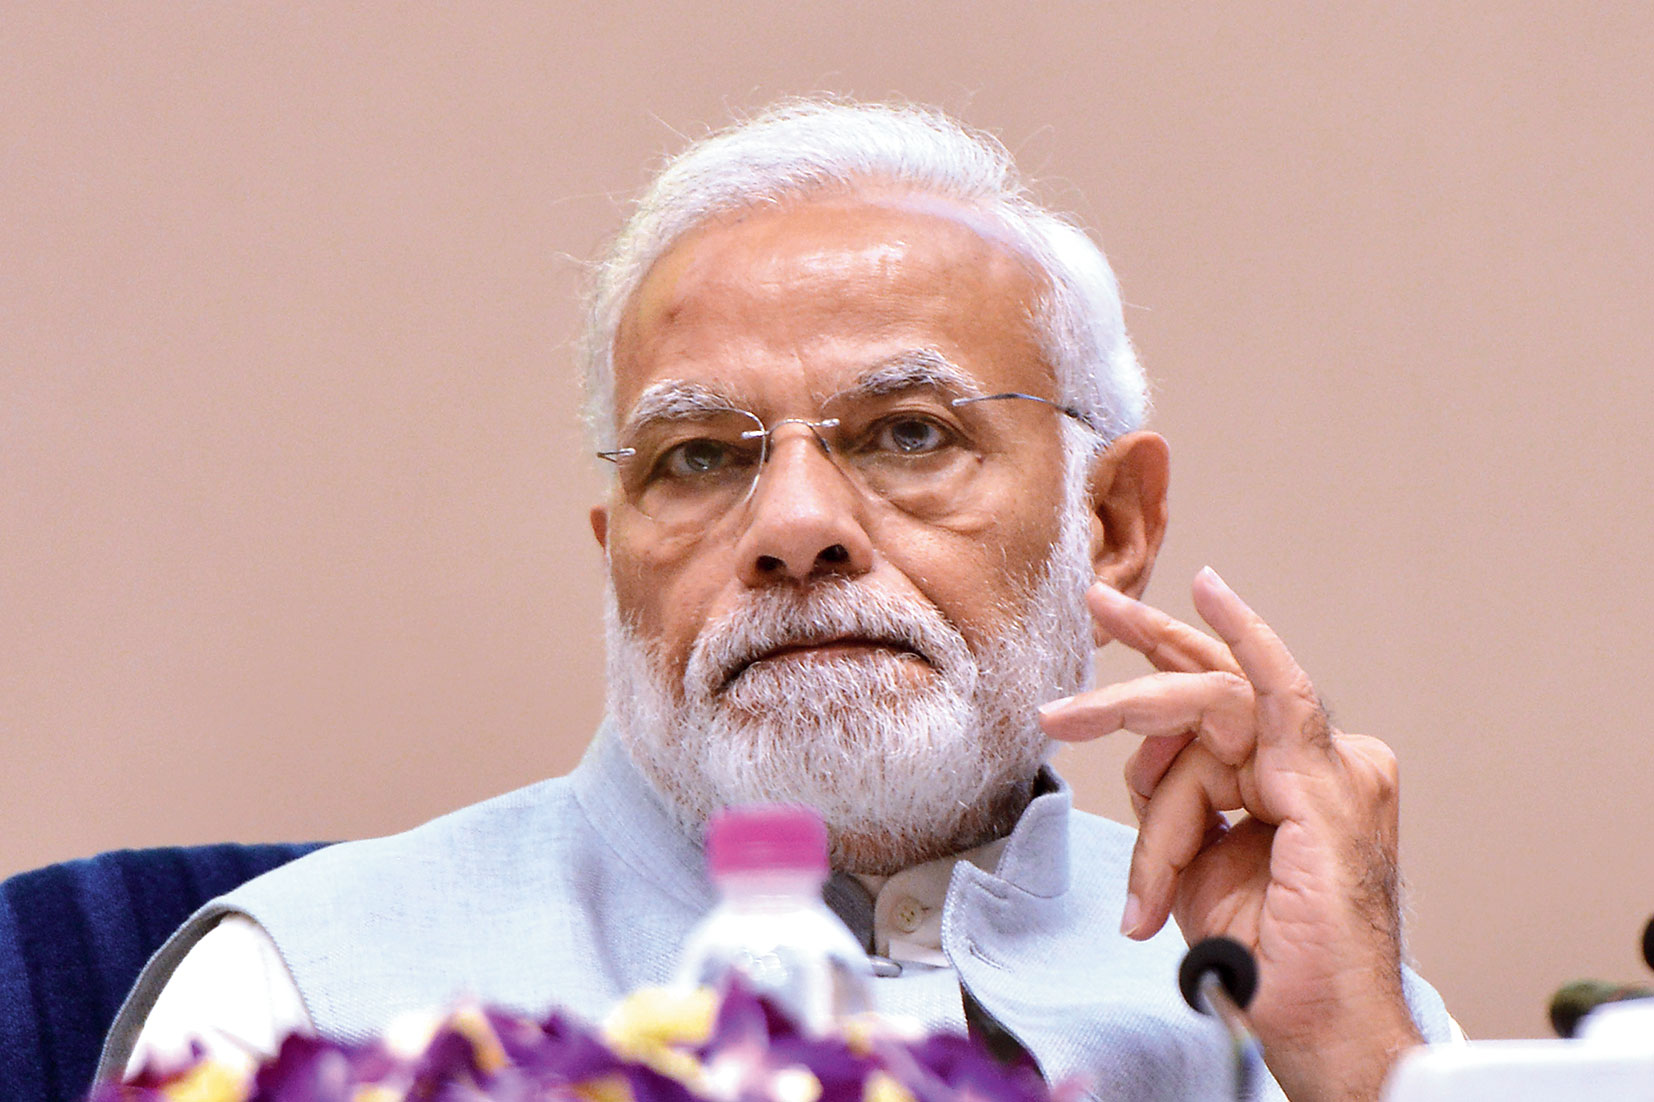 Bhakt to PM: Take care of middle class as you take care of tax